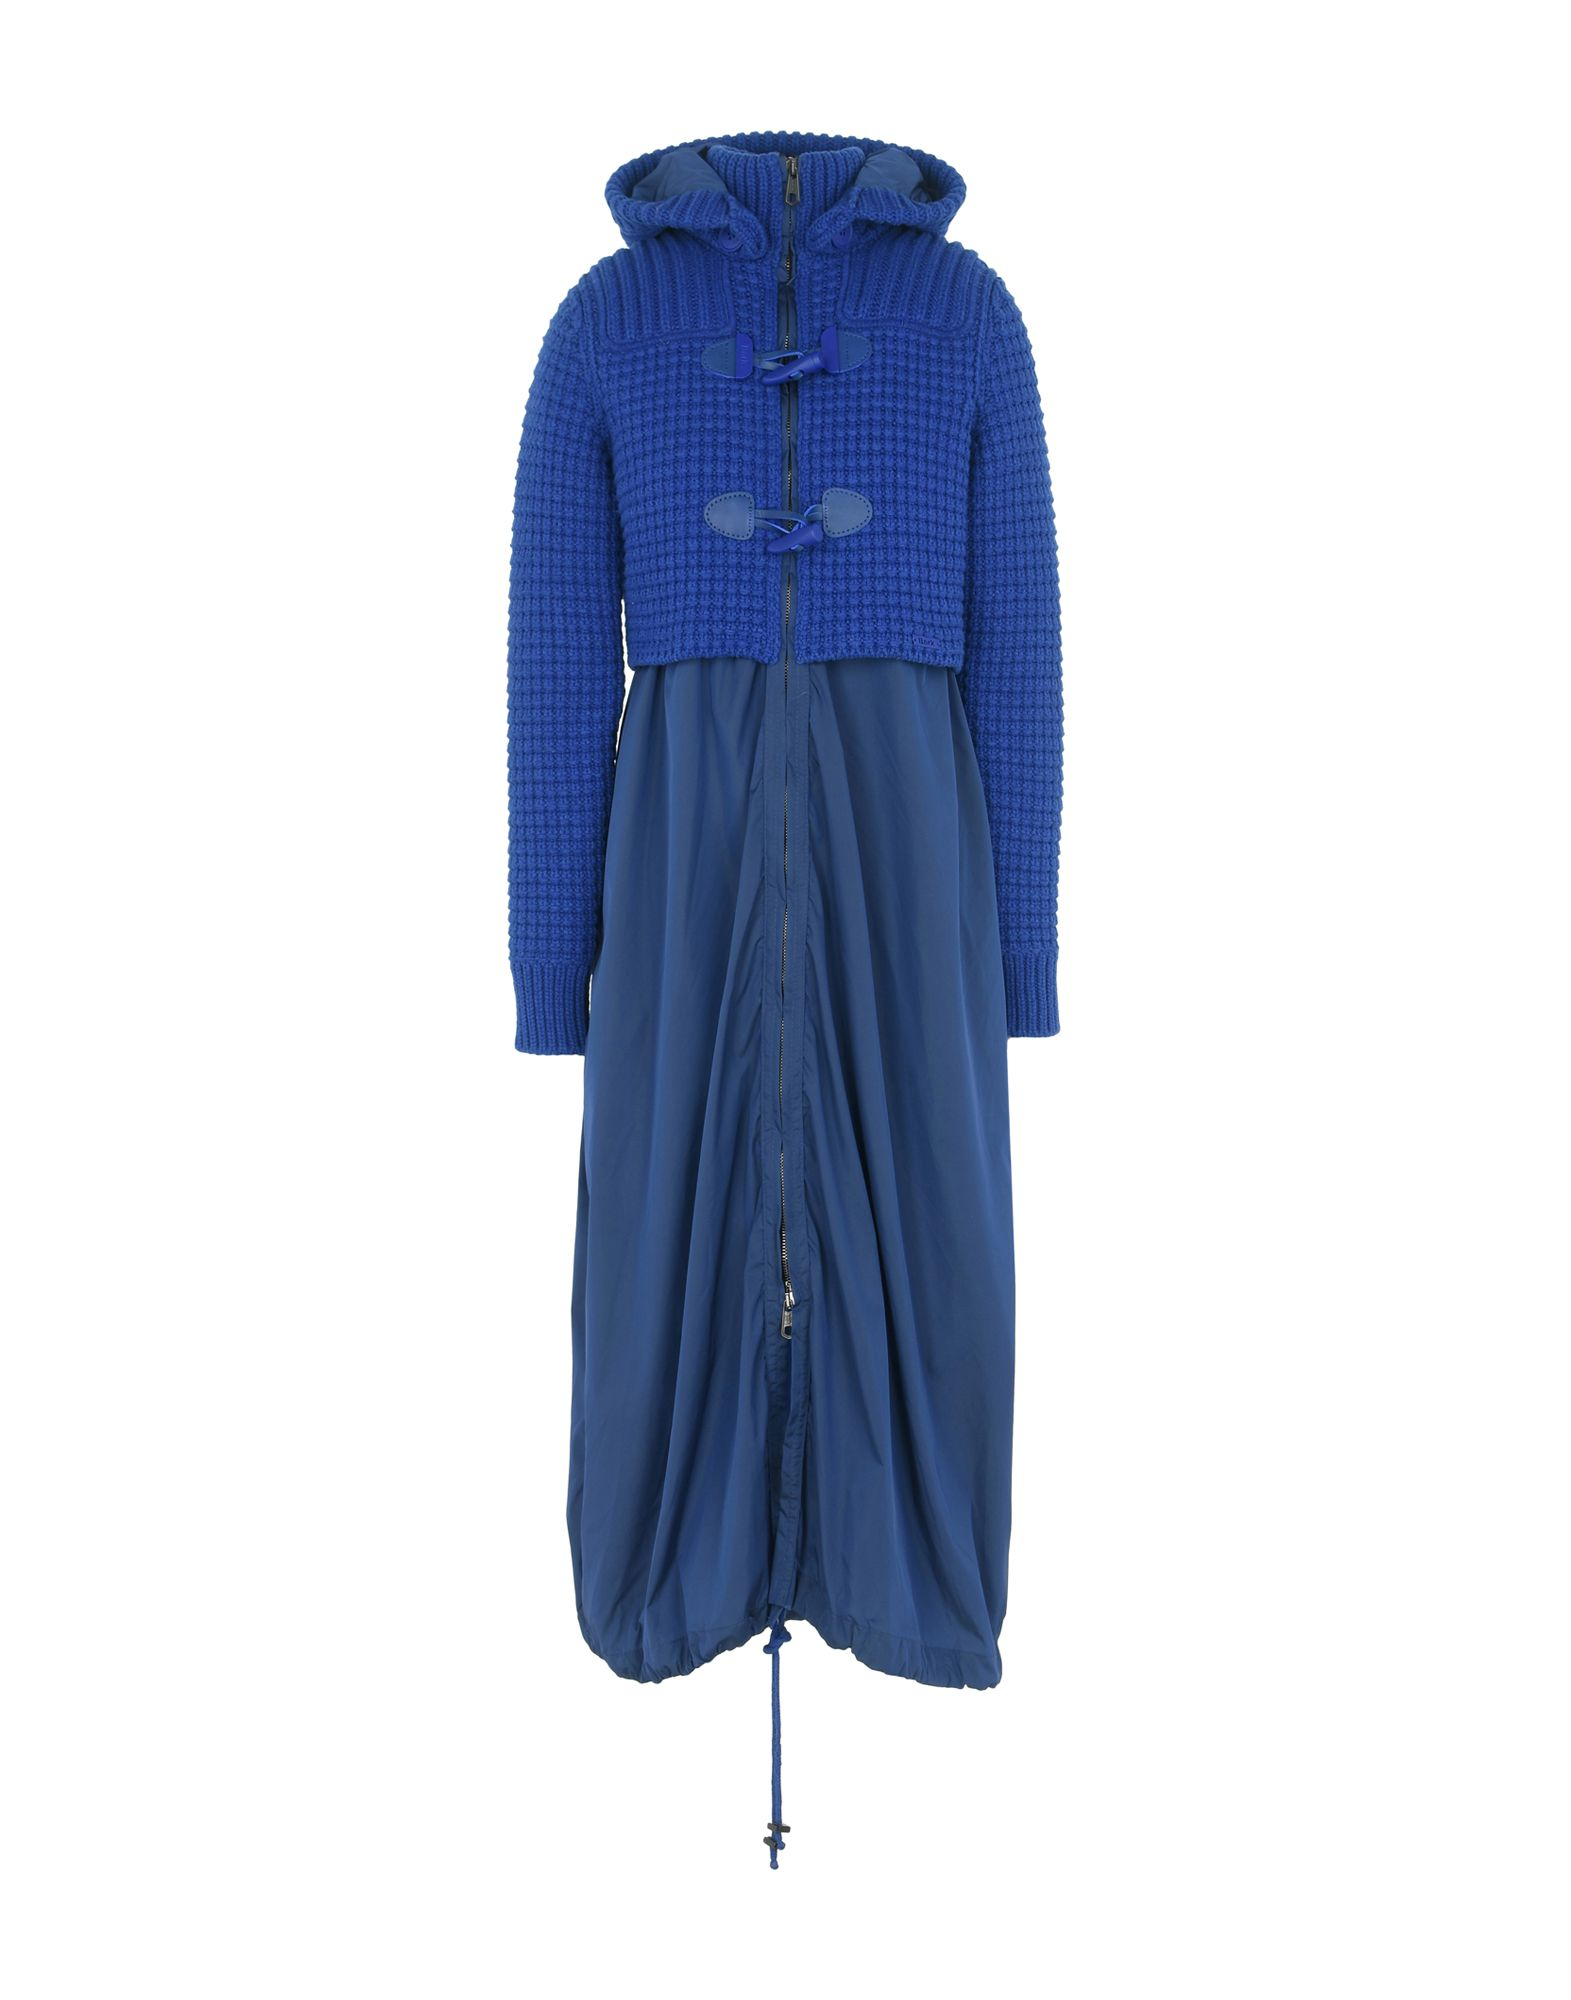 BARK Full-Length Jacket in Dark Blue